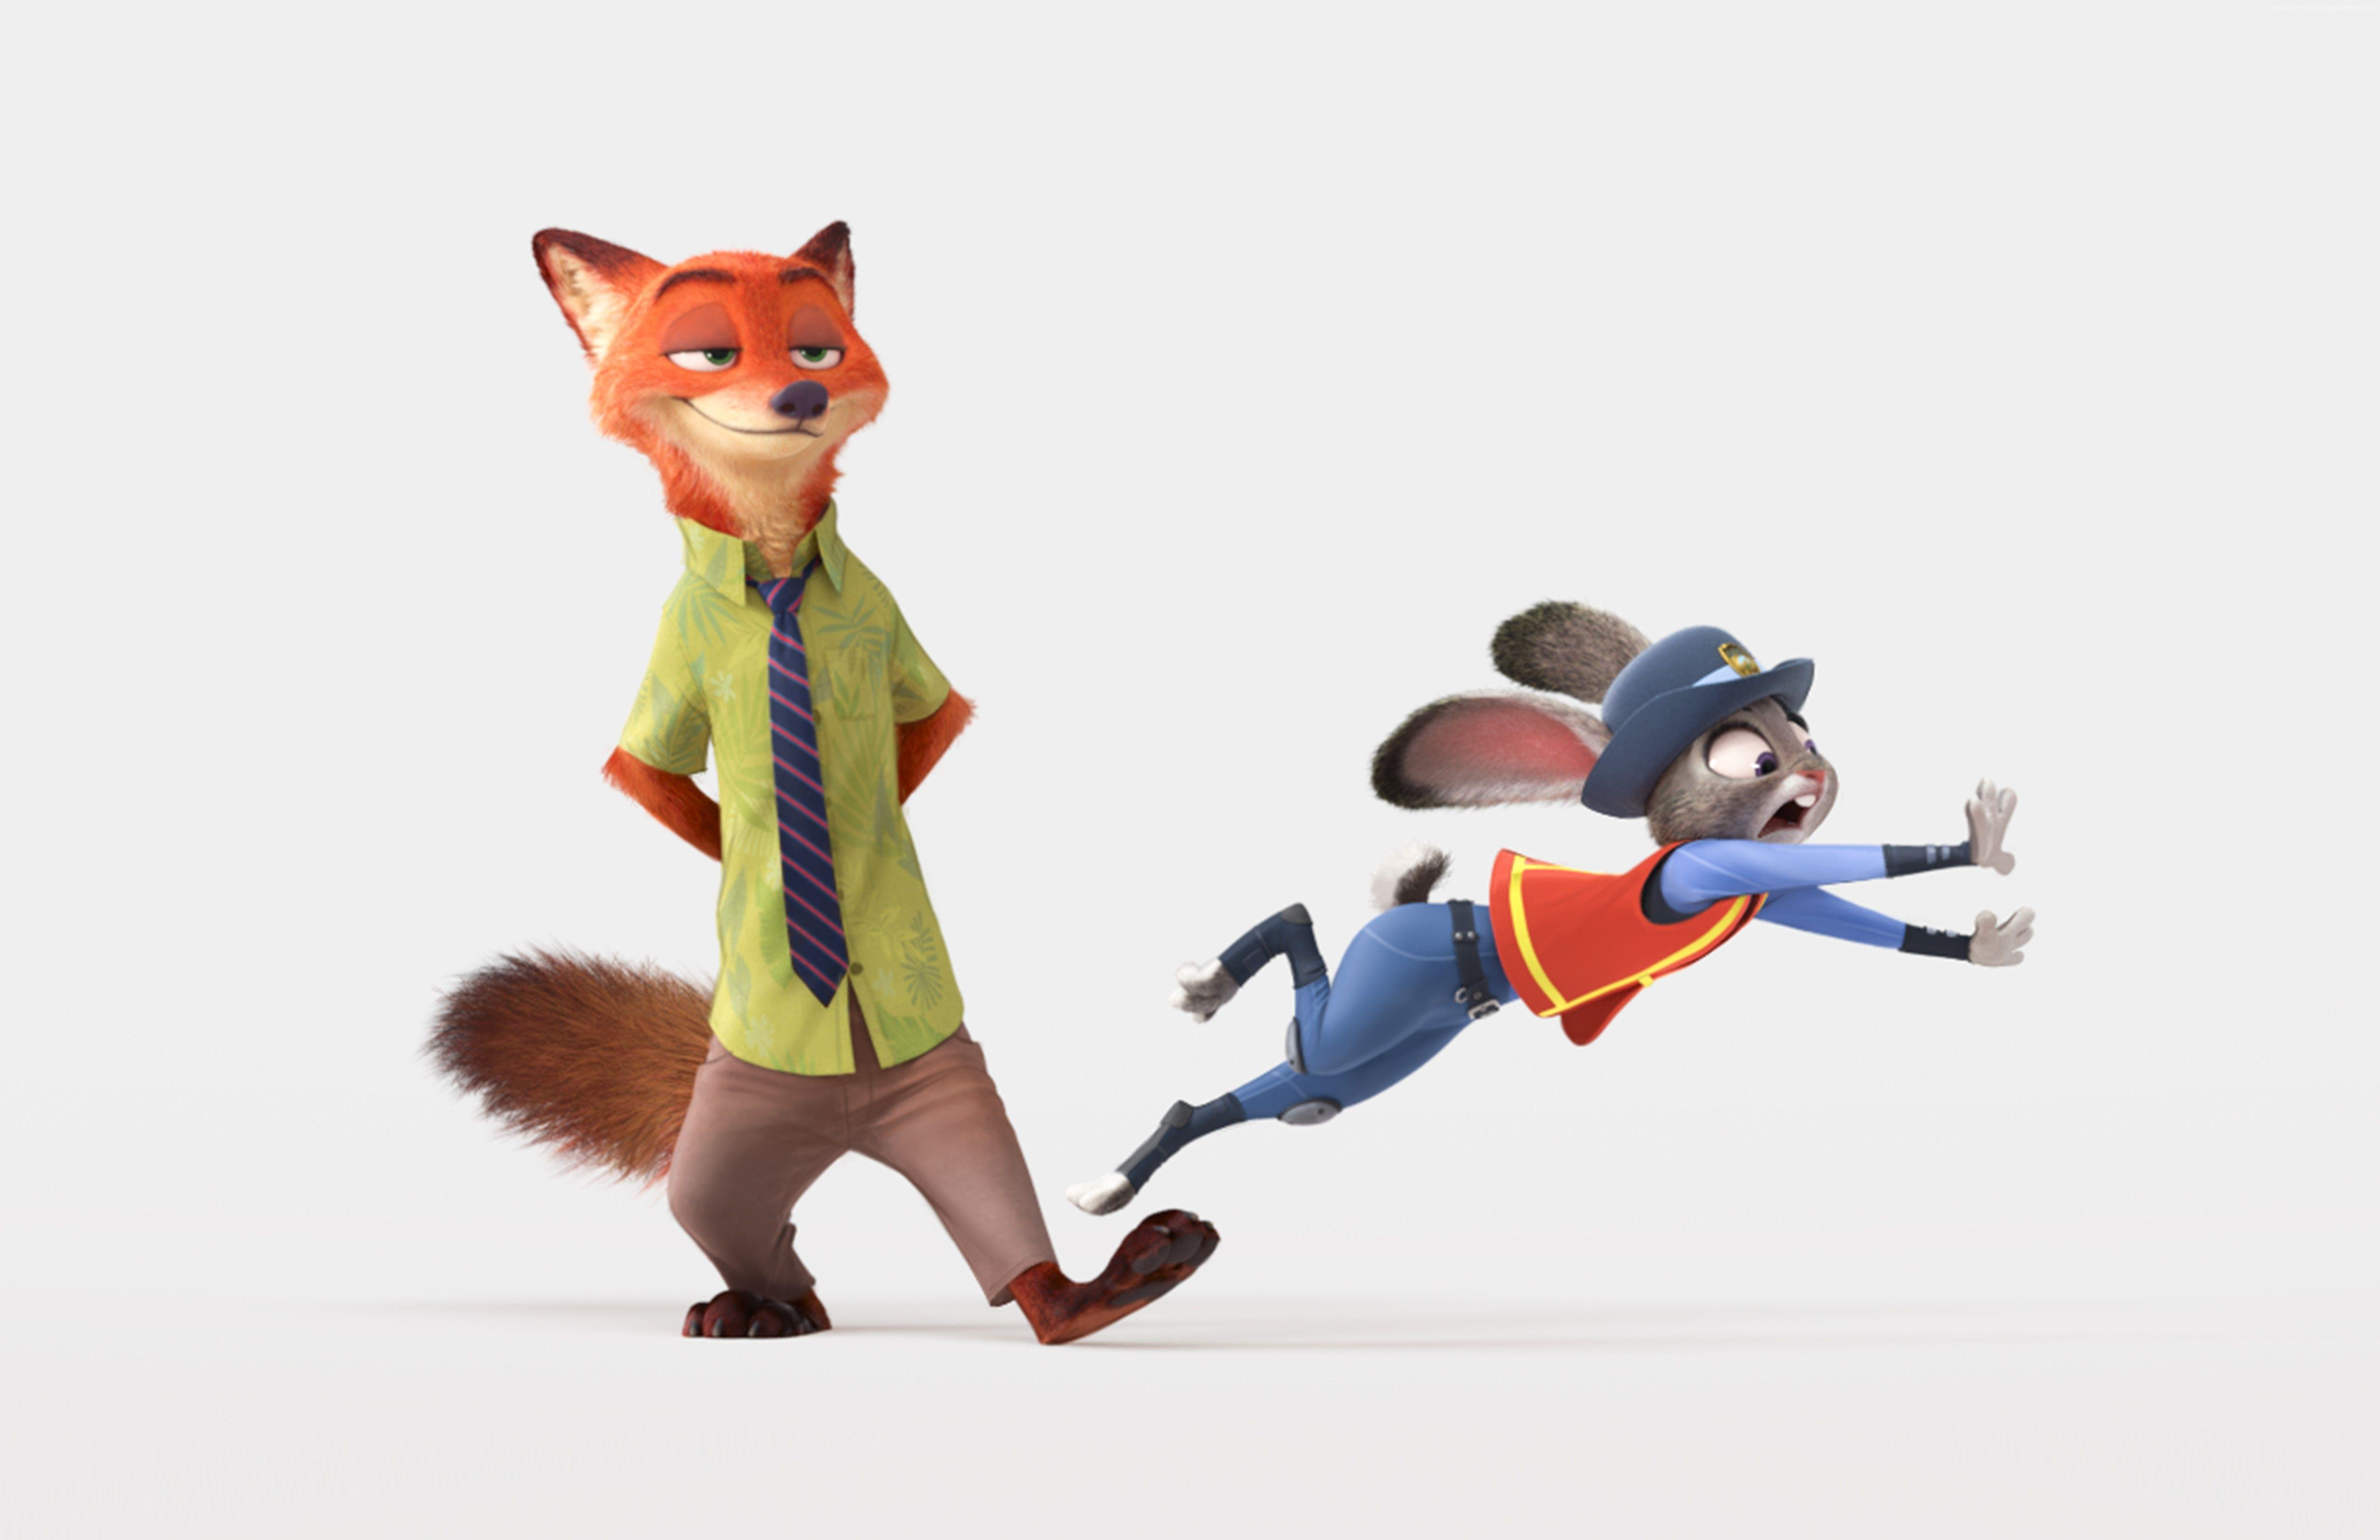 Zootopia Wallpaper, Movies: Zootopia, Best Animation Movies of ...